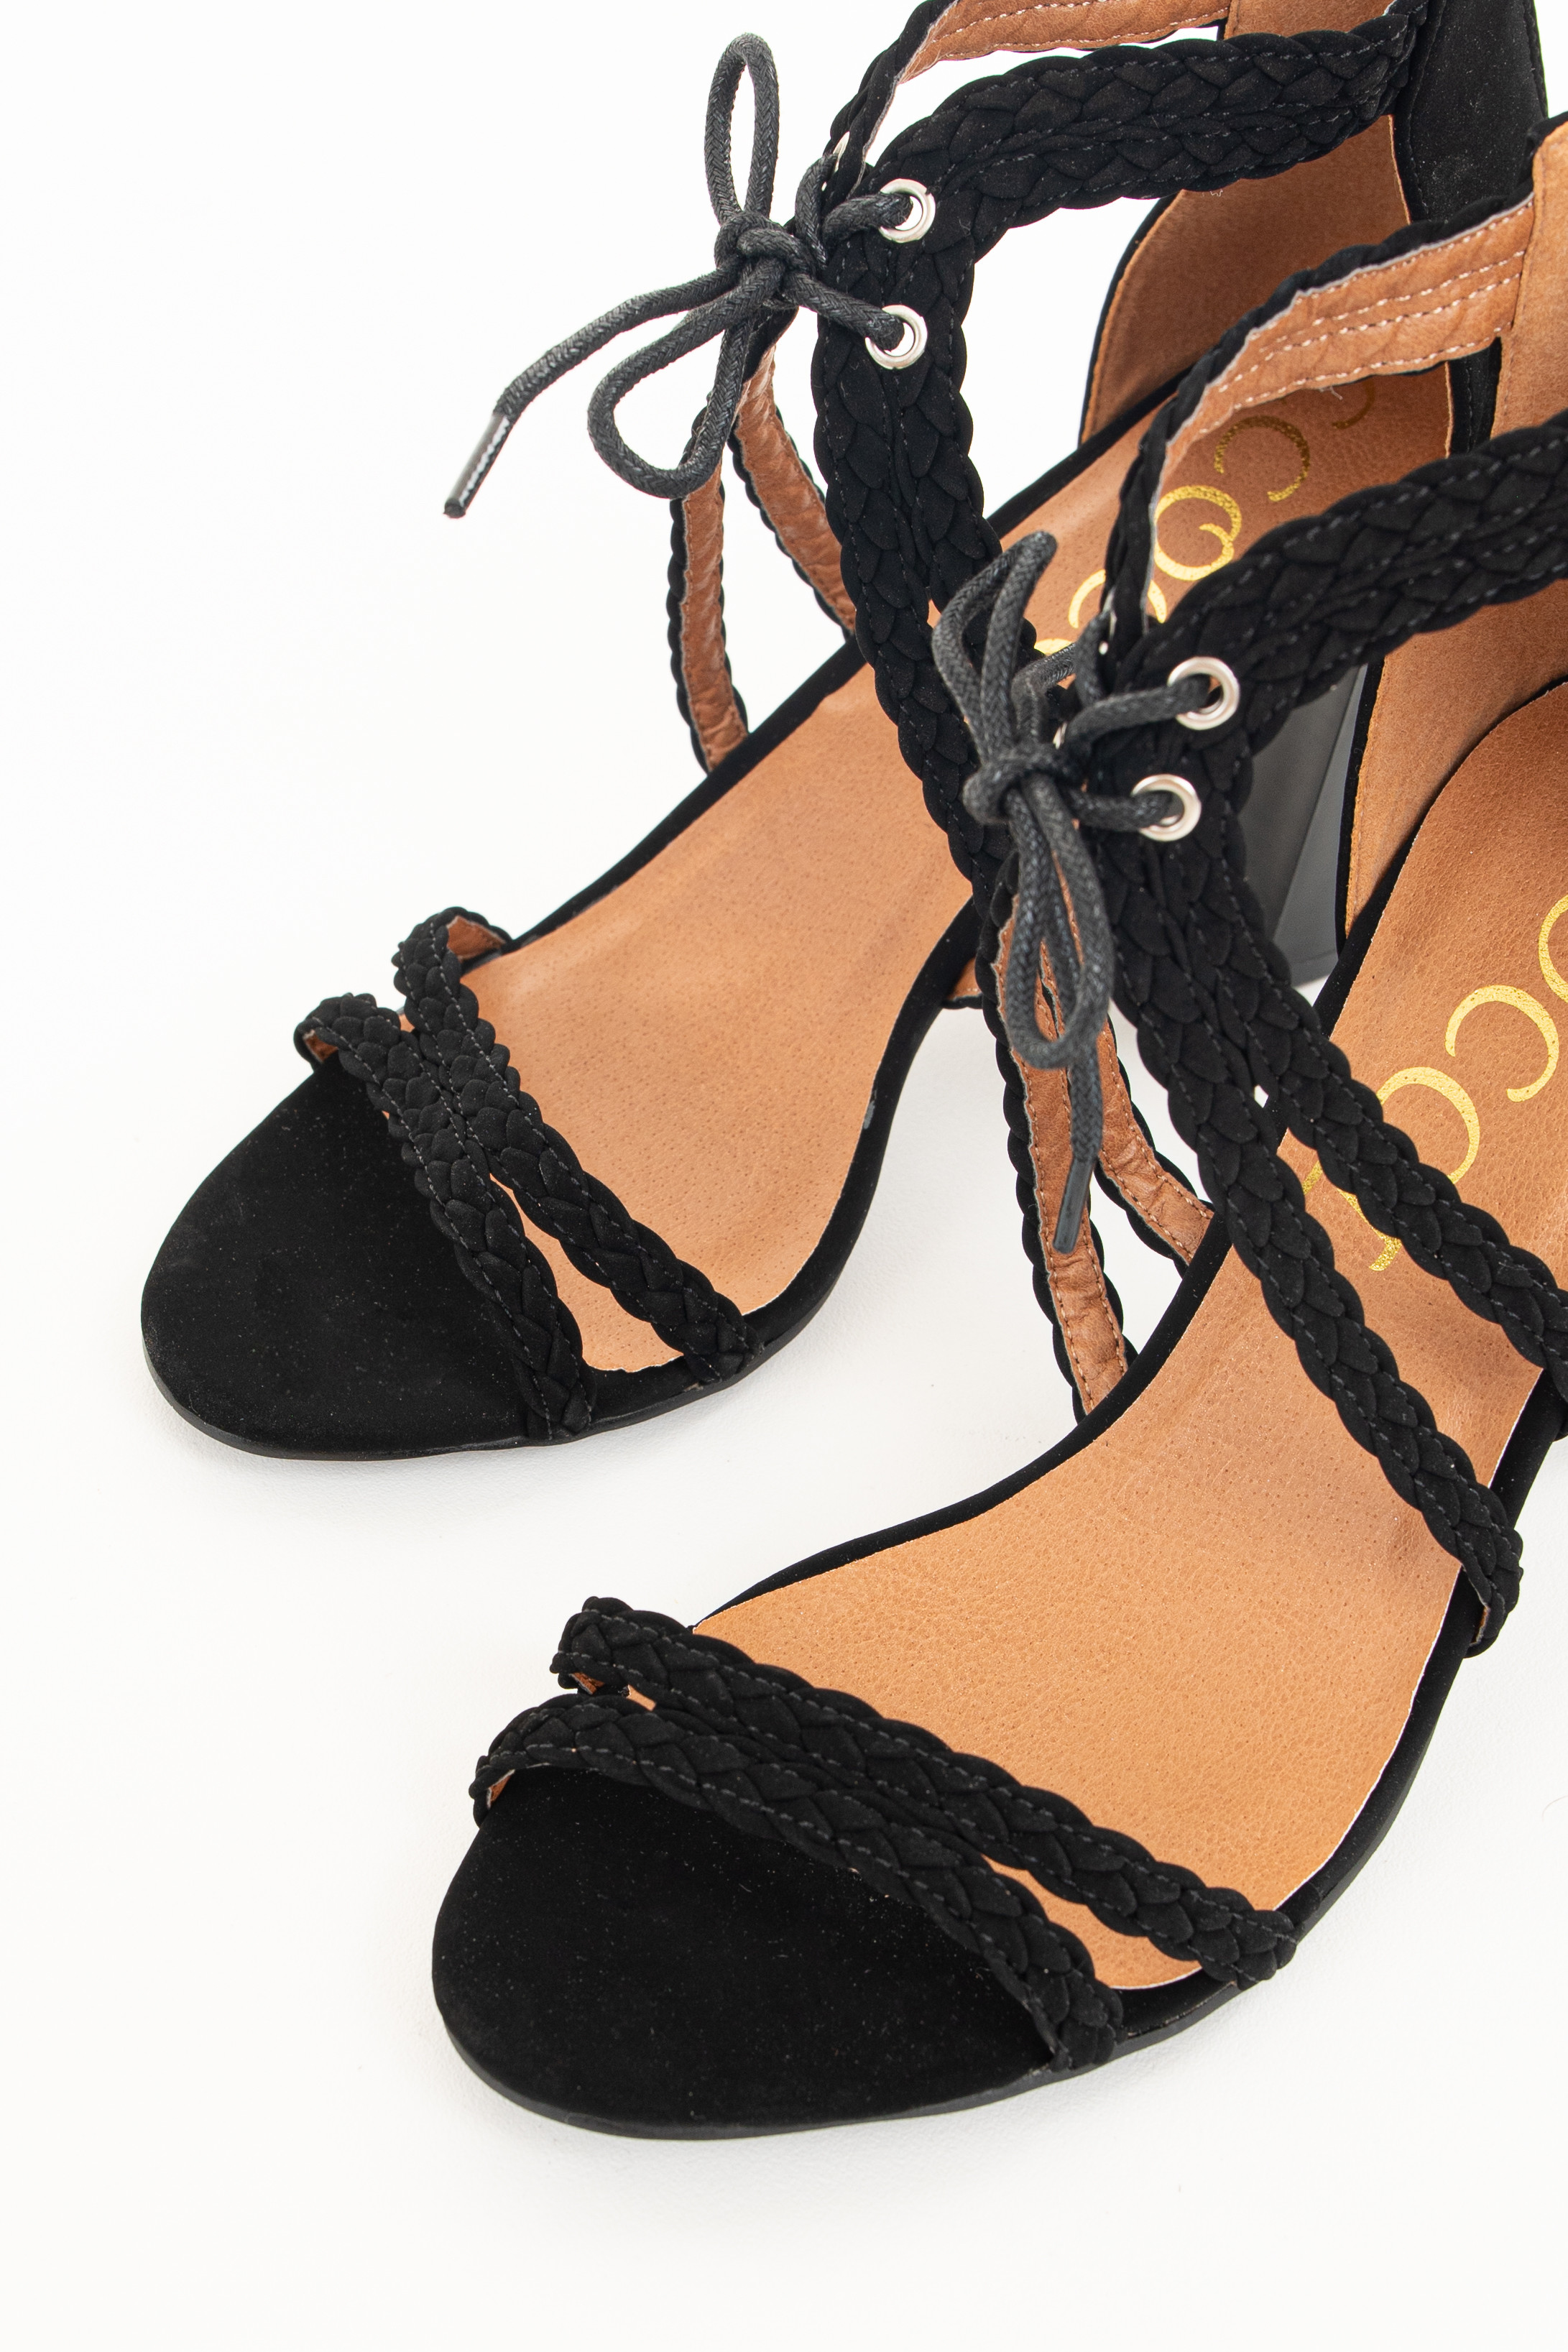 Ink Black Faux Leather High Heels with Braided Detail